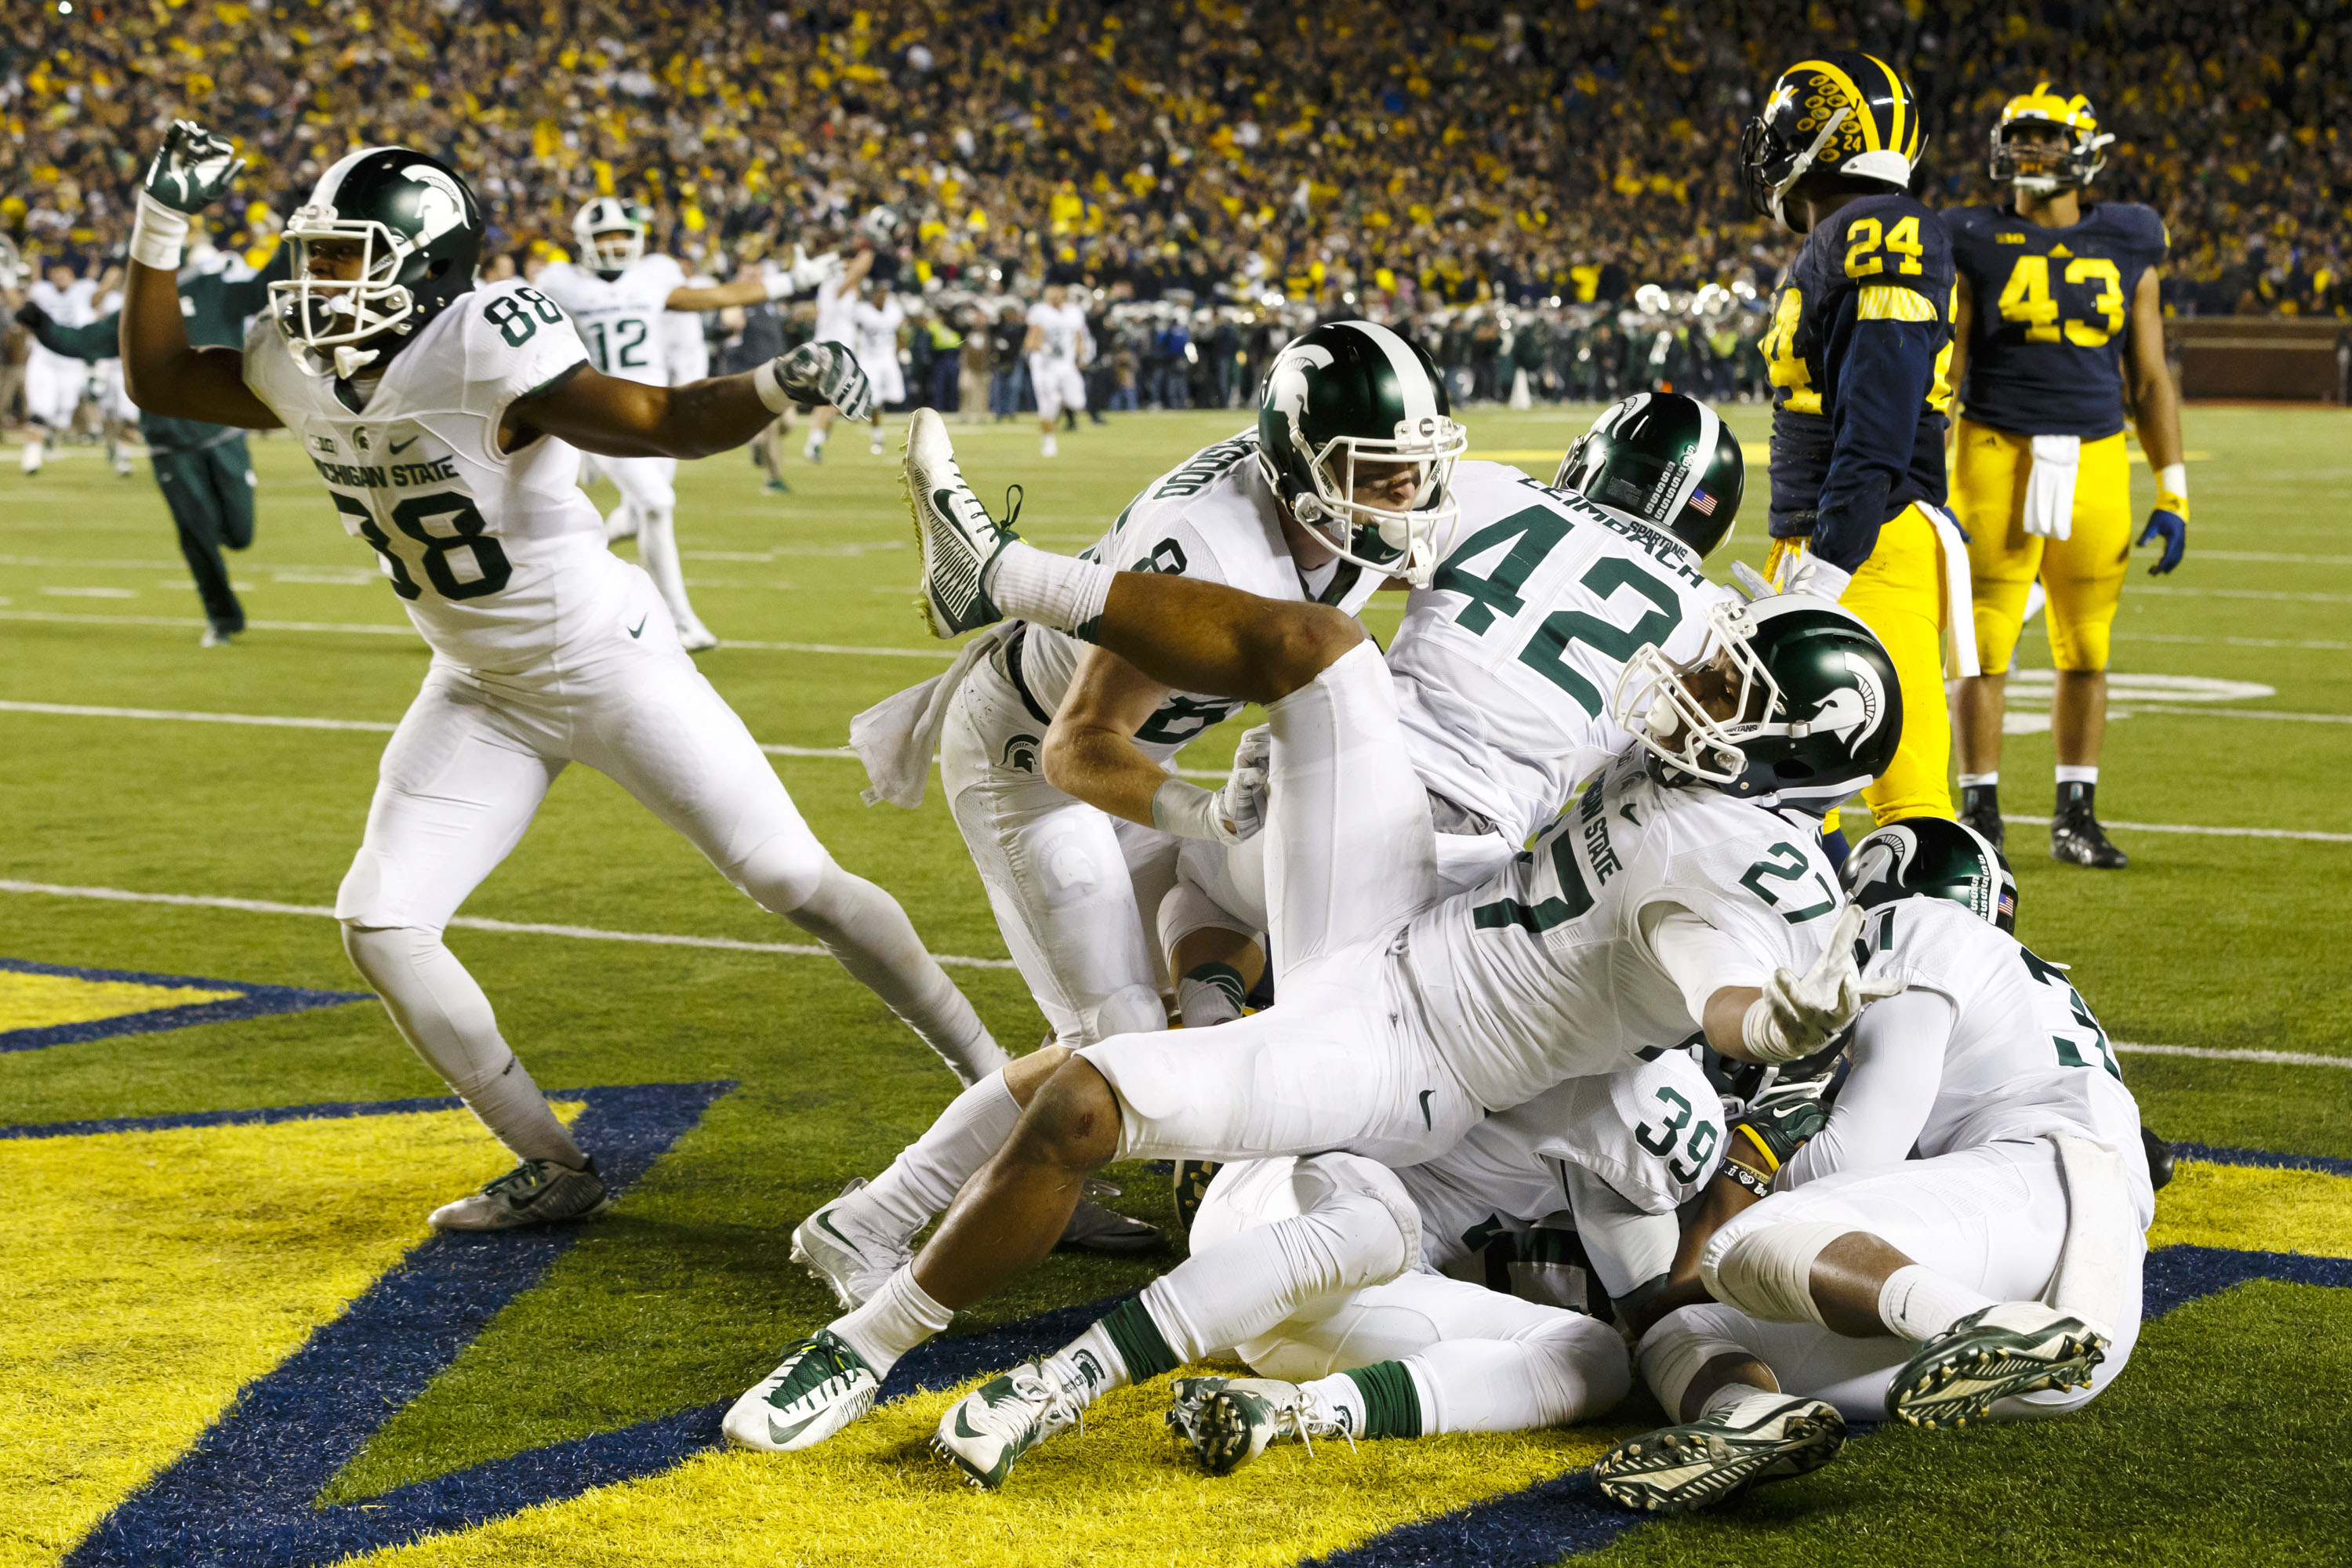 MSU's stunning win over Michigan announces return of rivalry - Big Ten  Network